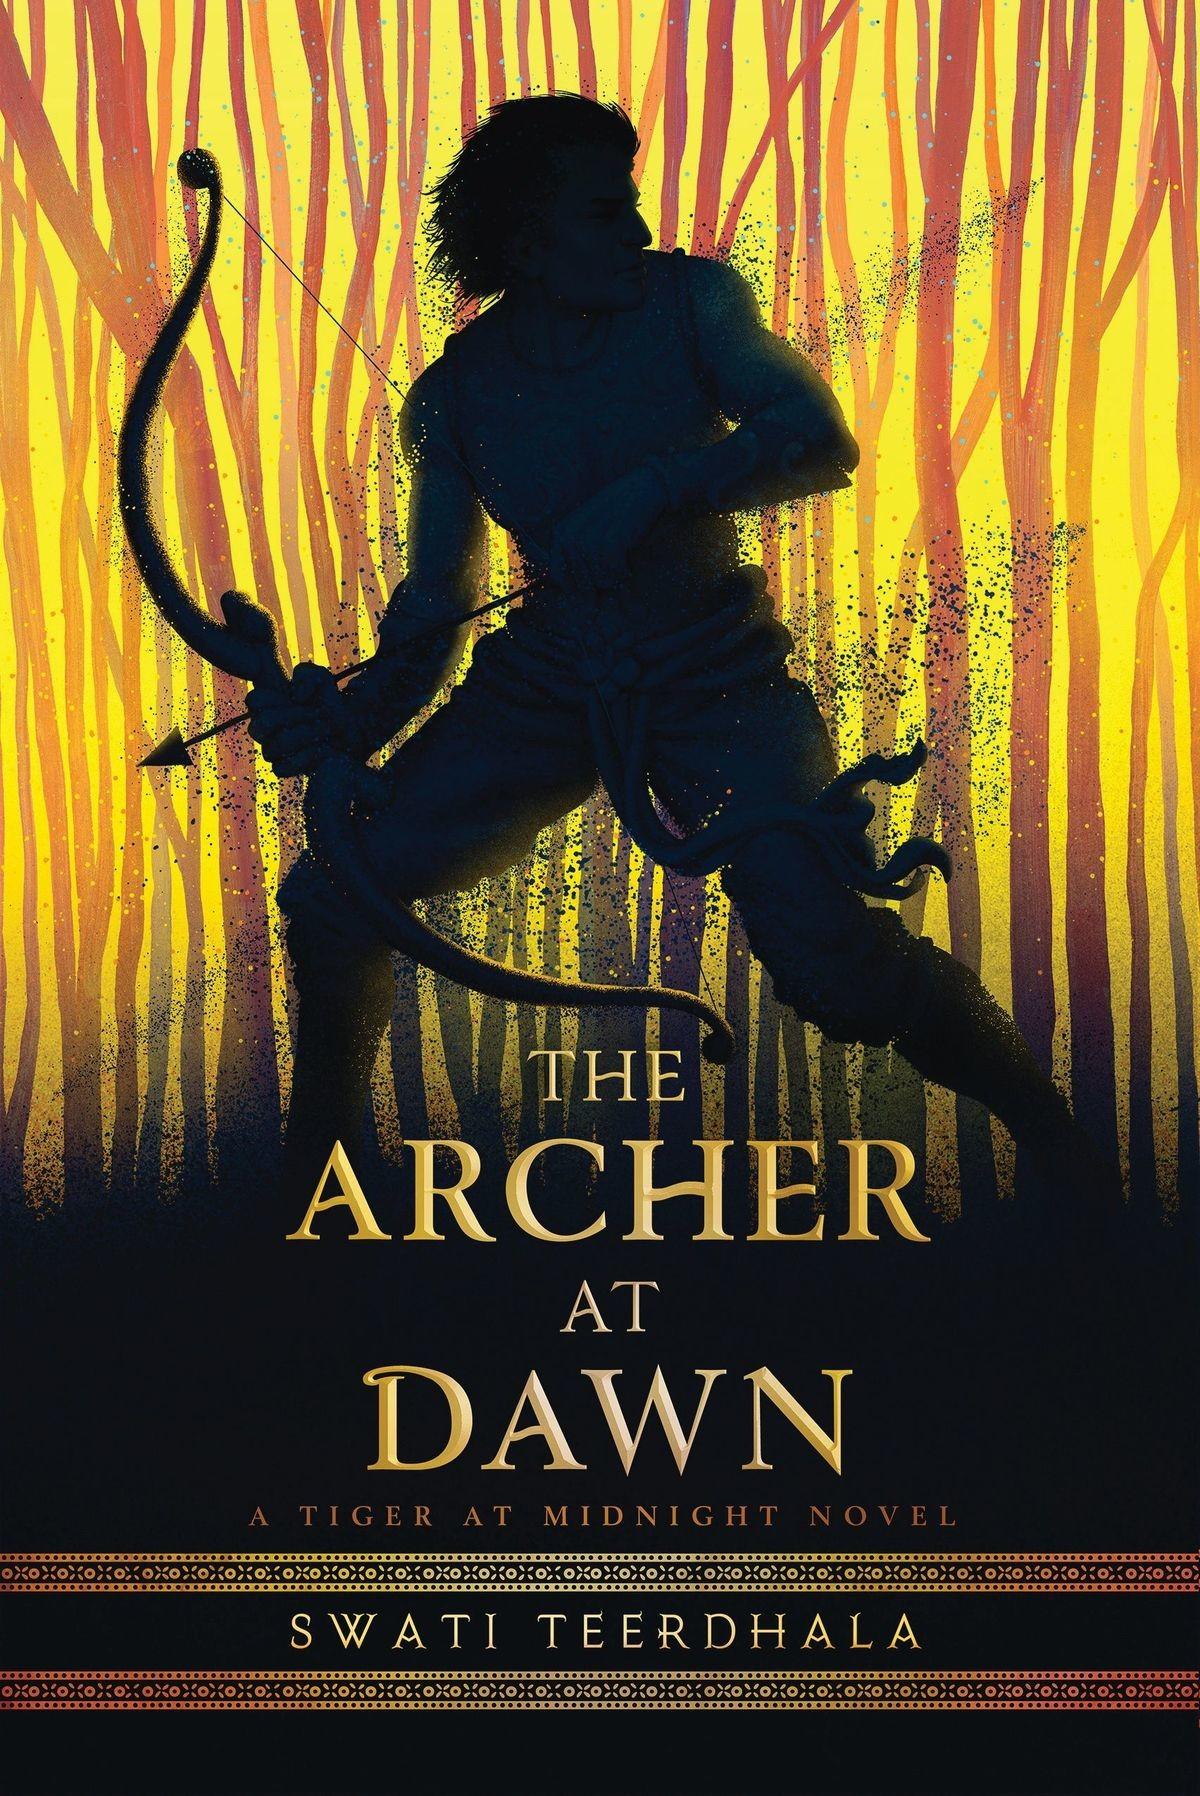 The Archer at Dawn (The Tiger at Midnight Trilogy 2) - Swati Teerdhala